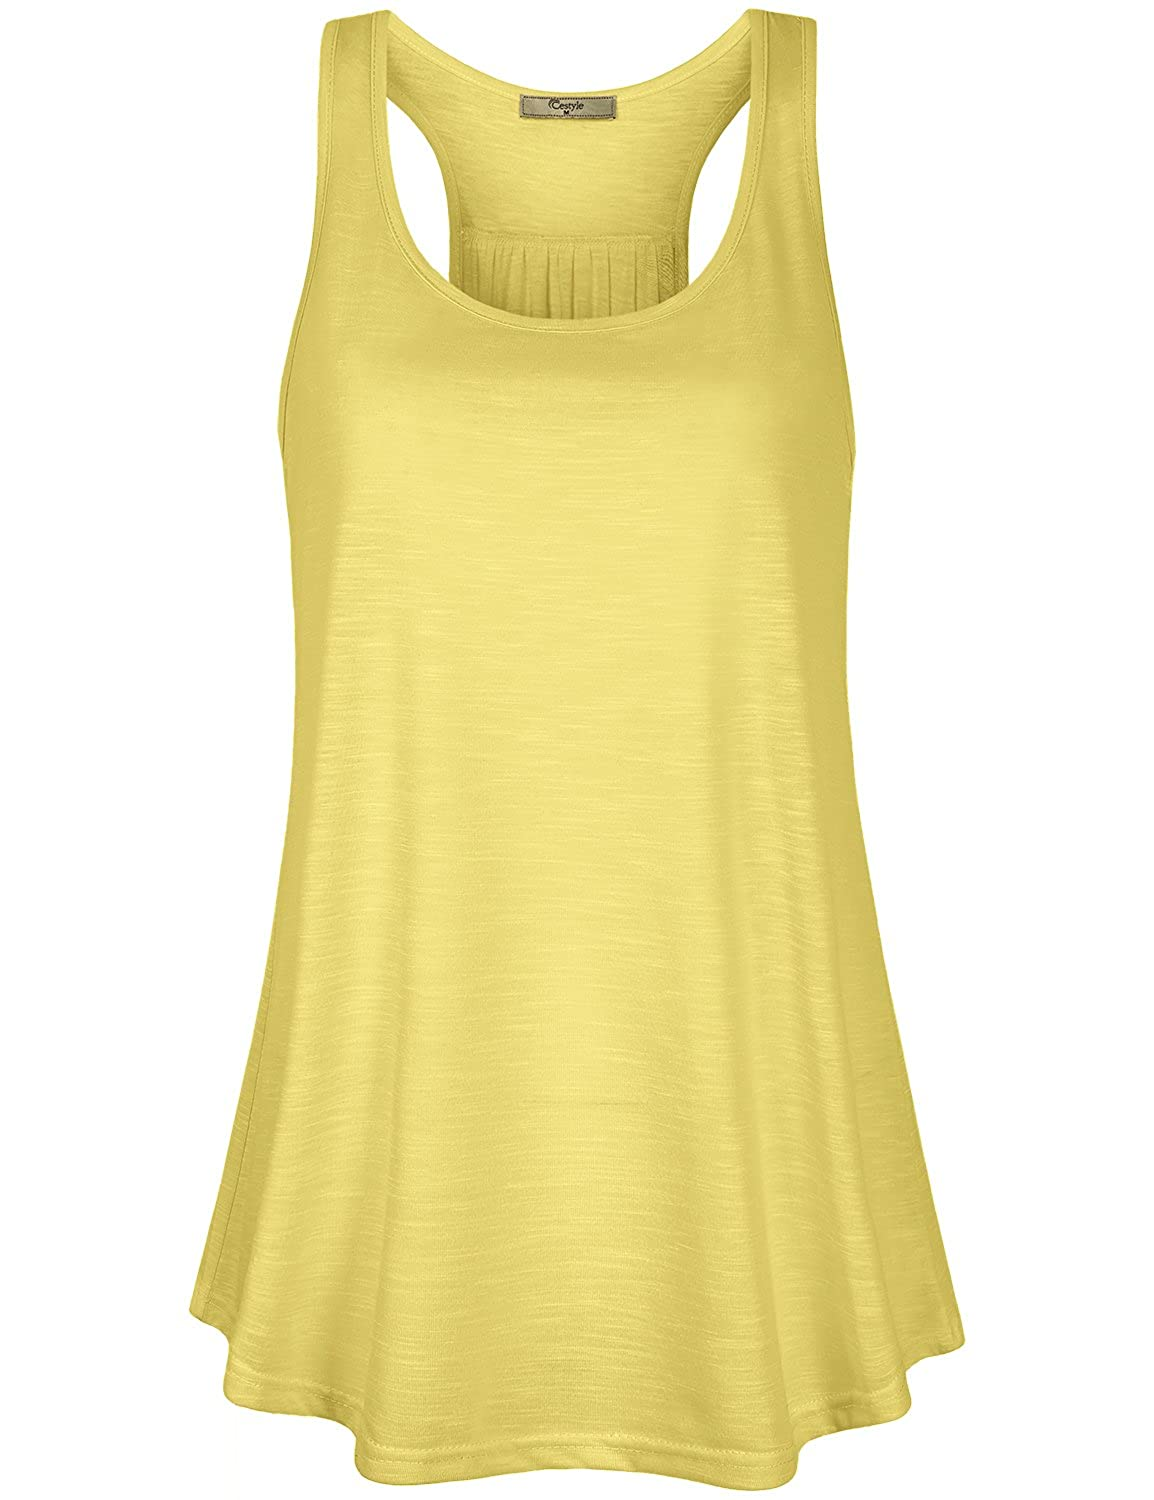 Cestyle Womens Sleeveless Scoop Neck Flowy Loose Fit Racerback Tank Top